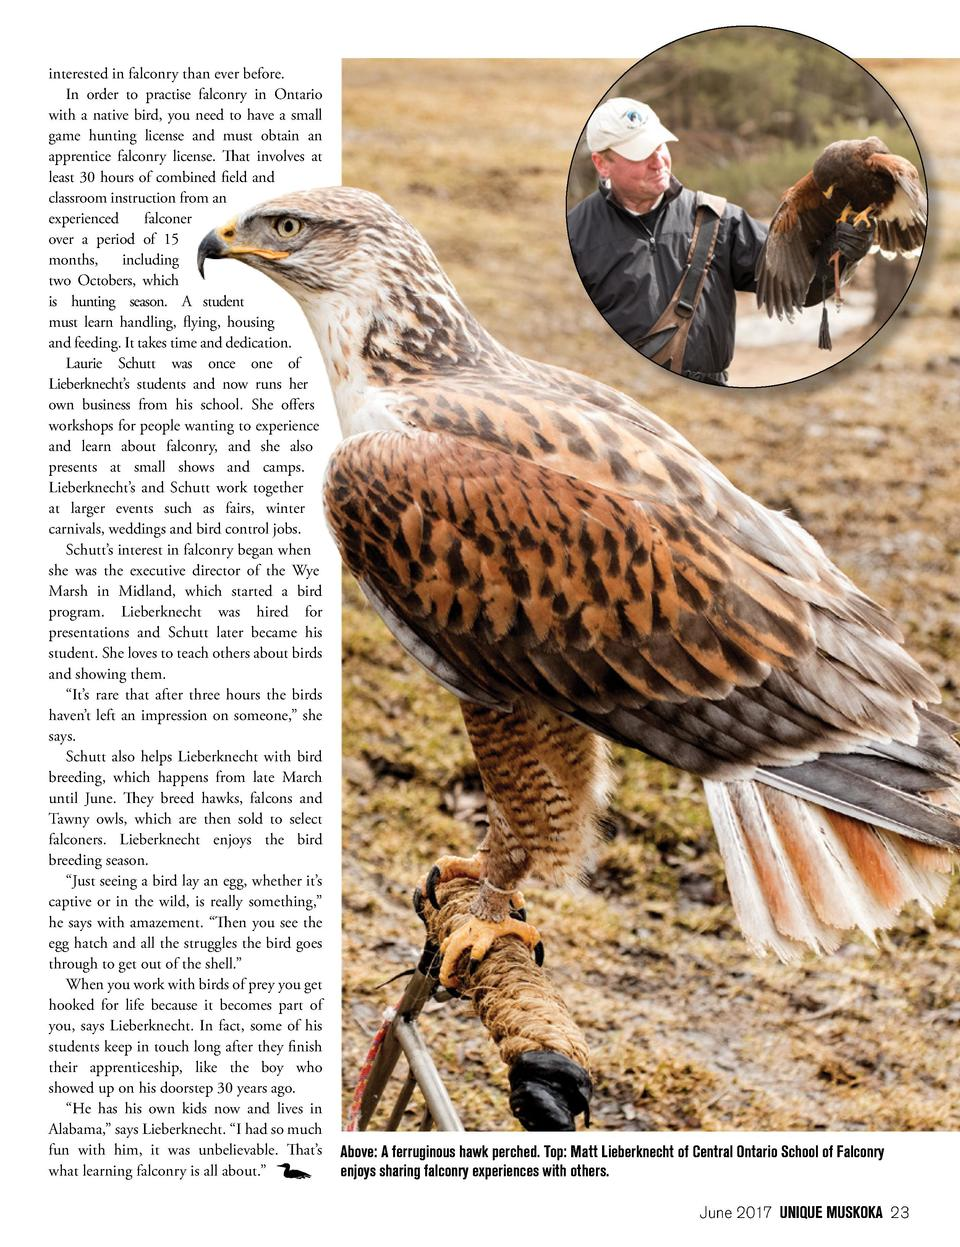 interested in falconry than ever before. In order to practise falconry in Ontario with a native bird, you need to have a s...